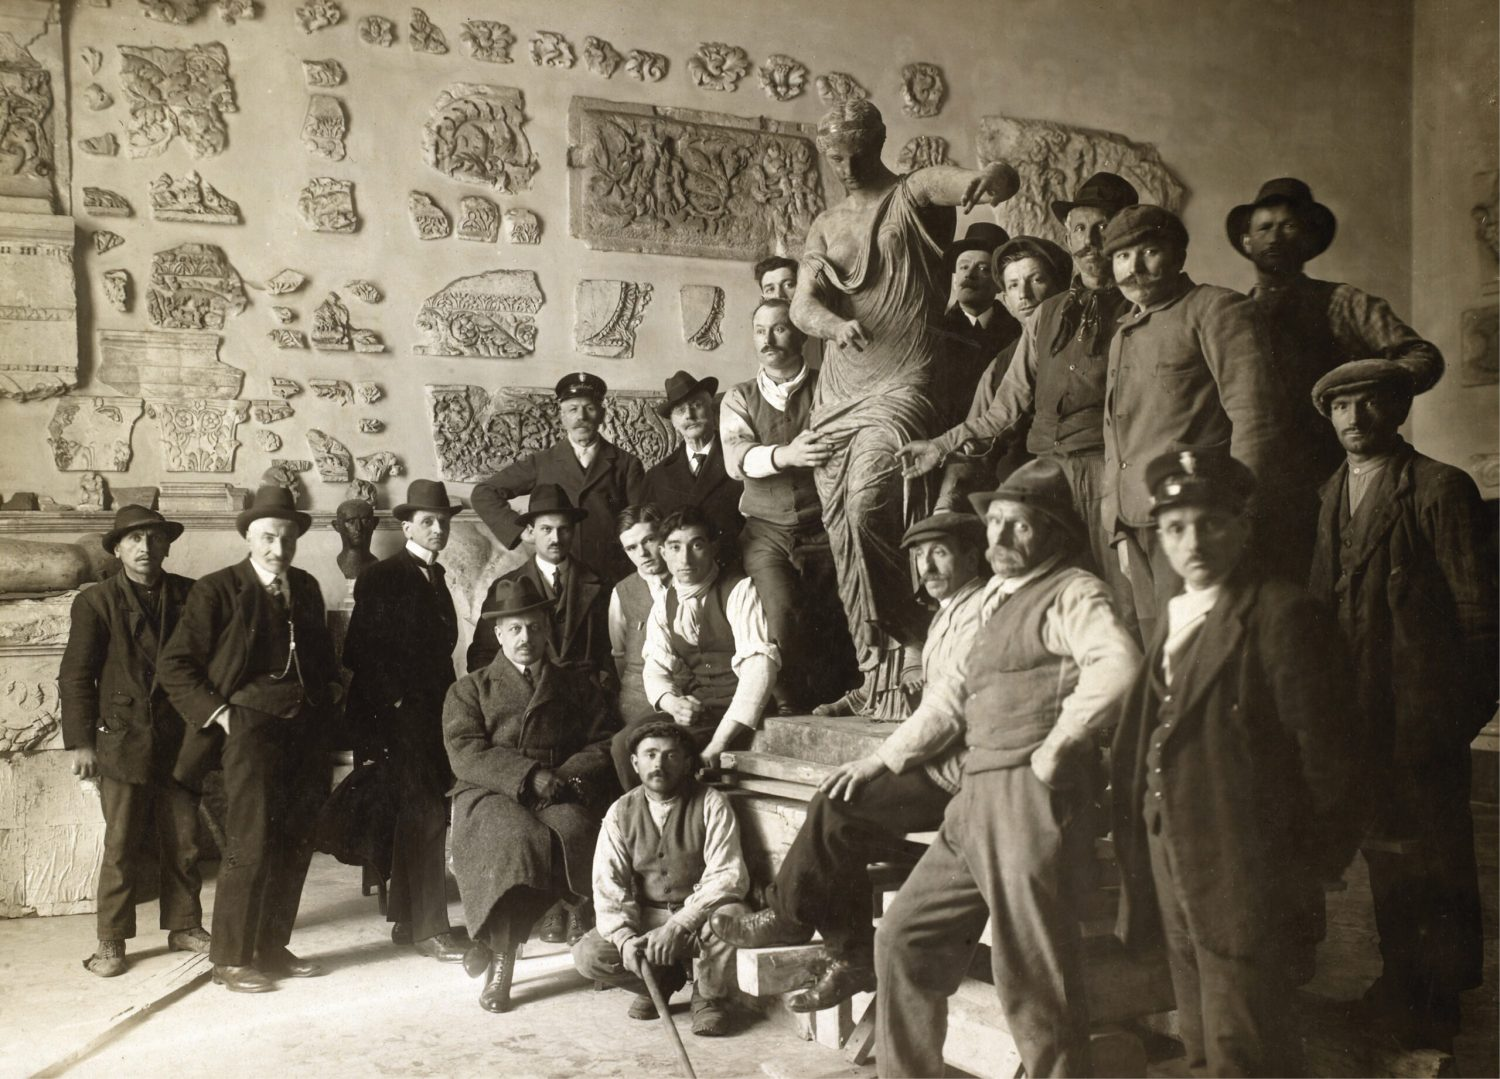 ABOVE The Winged Victory surrounded by employees of the Museo Patrio in Brescia, at the start of the 20th century.